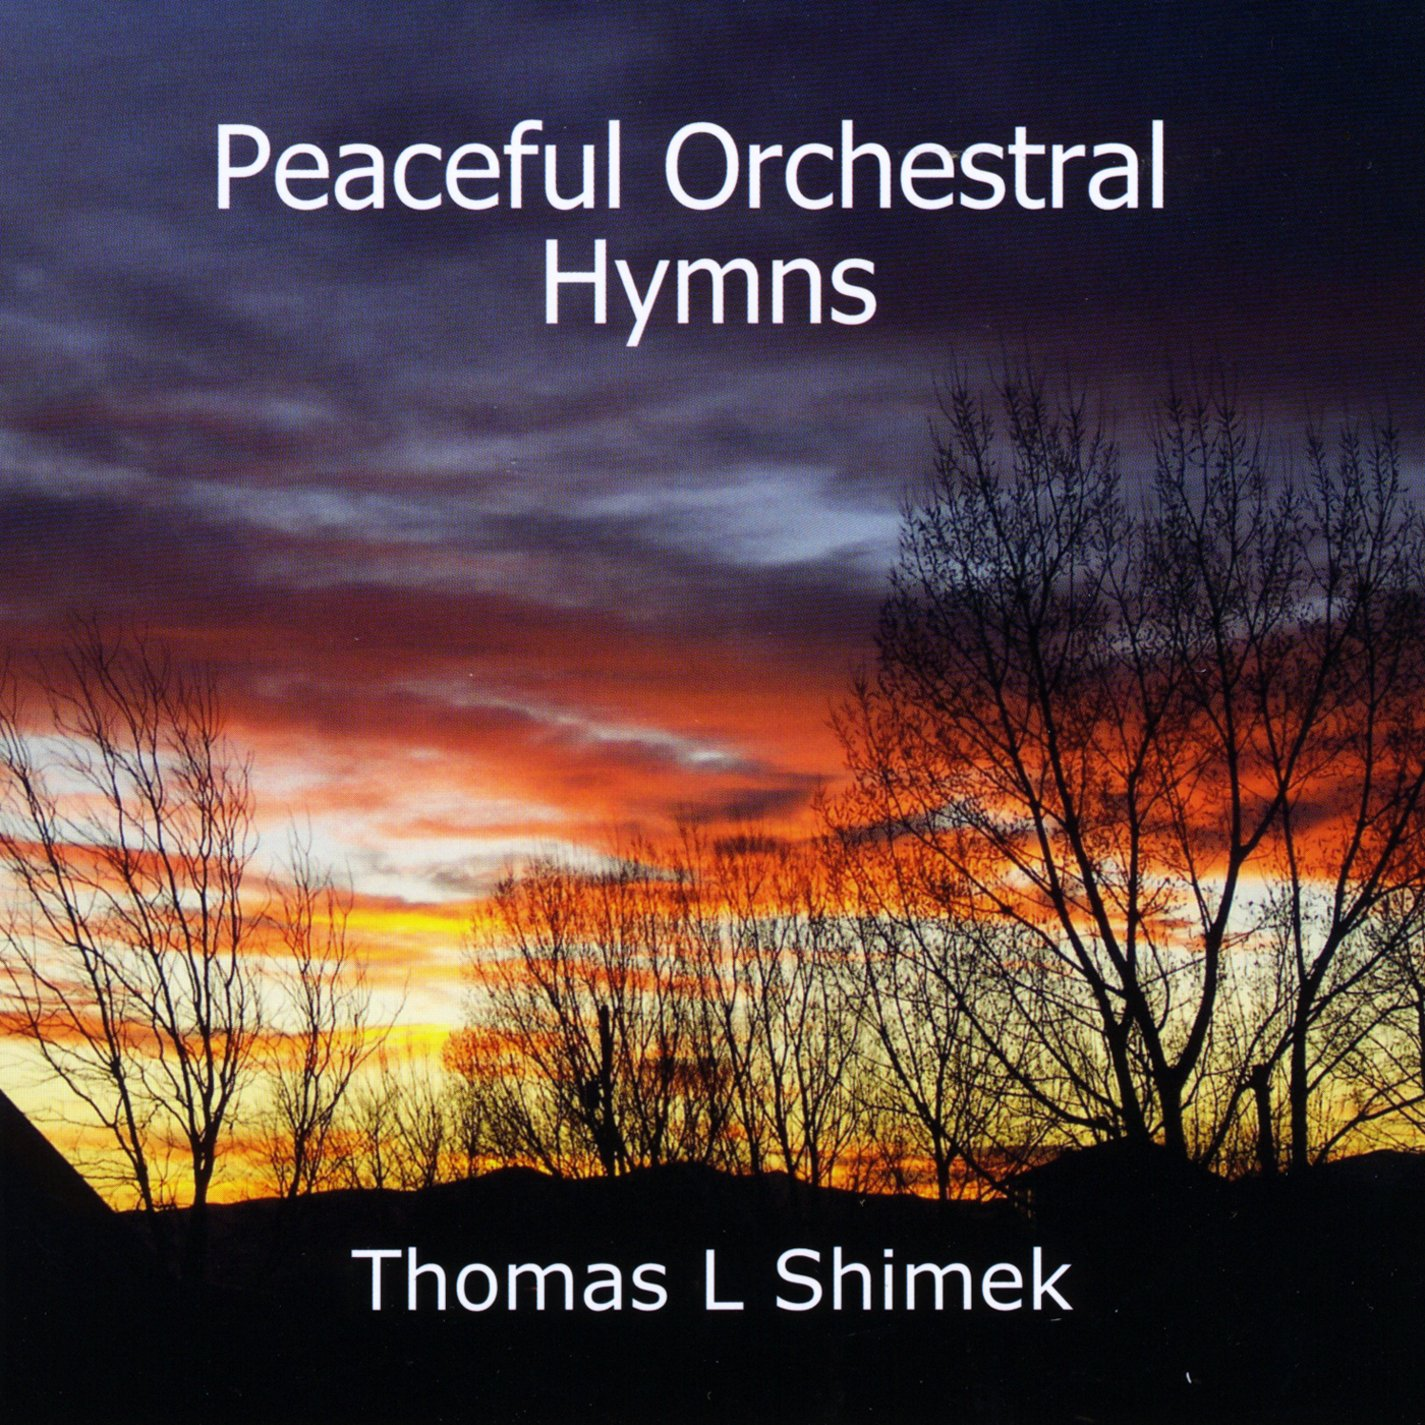 Peaceful Orchestral Hymns by CD Baby